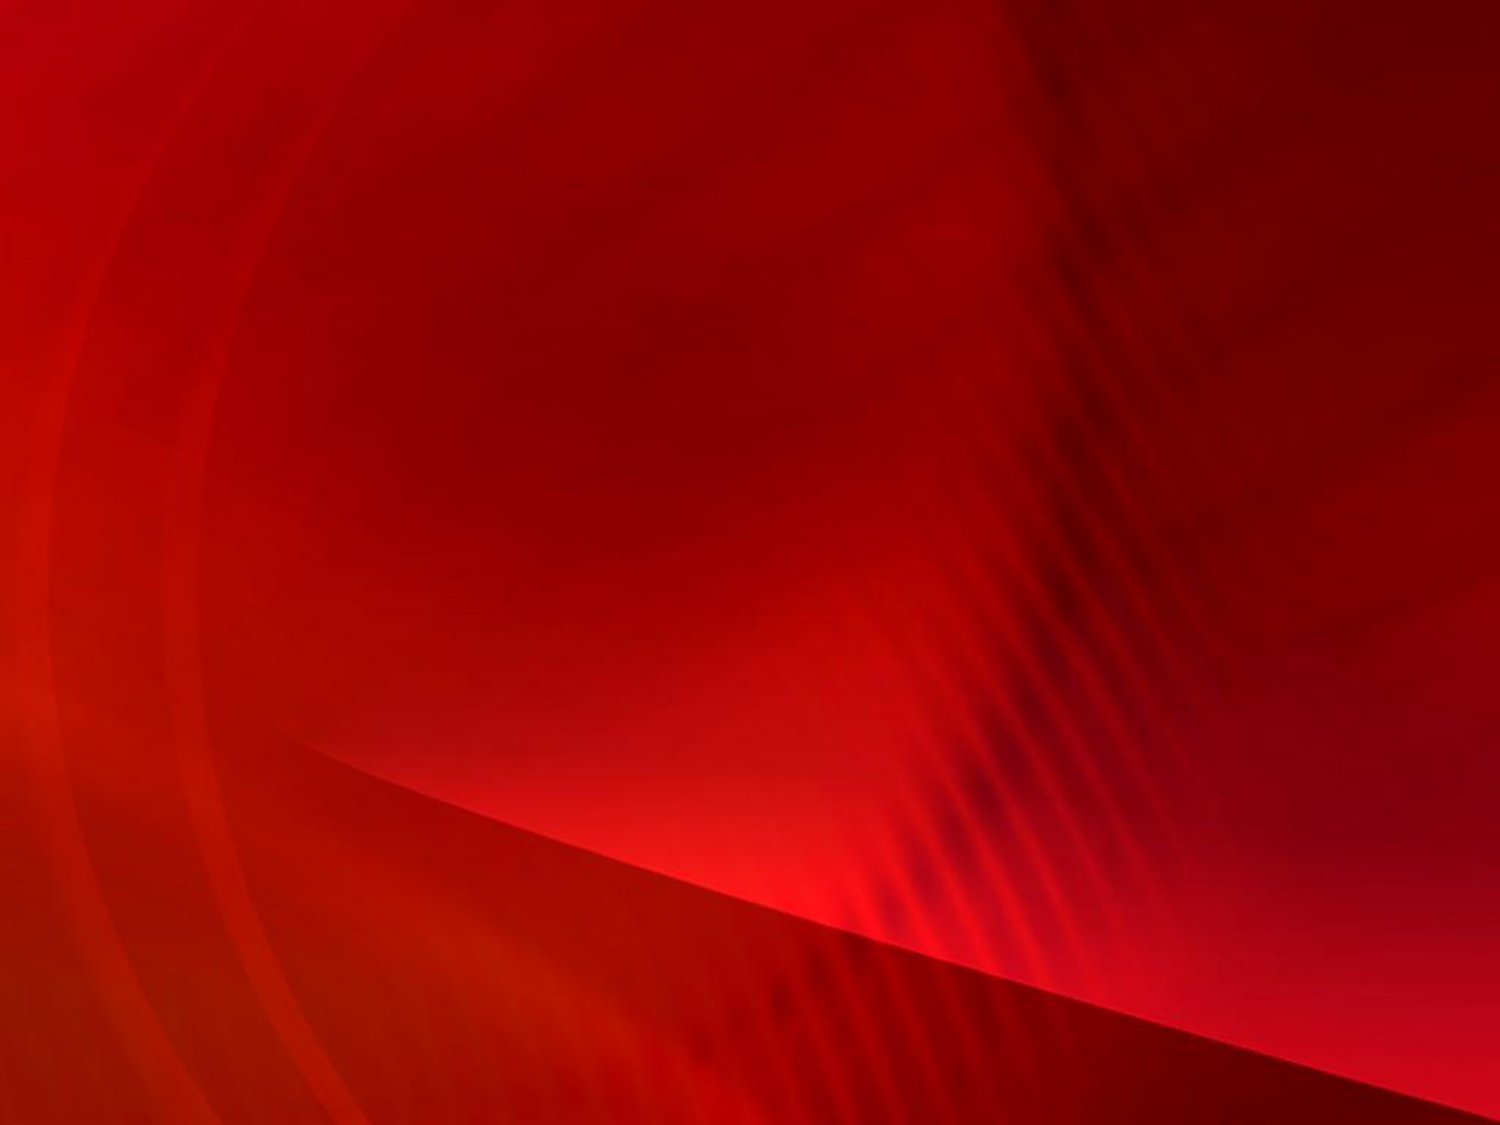 Powerpoint slides free powerpoint template background slide red powerpoint slides free powerpoint template background slide red phase toneelgroepblik Gallery